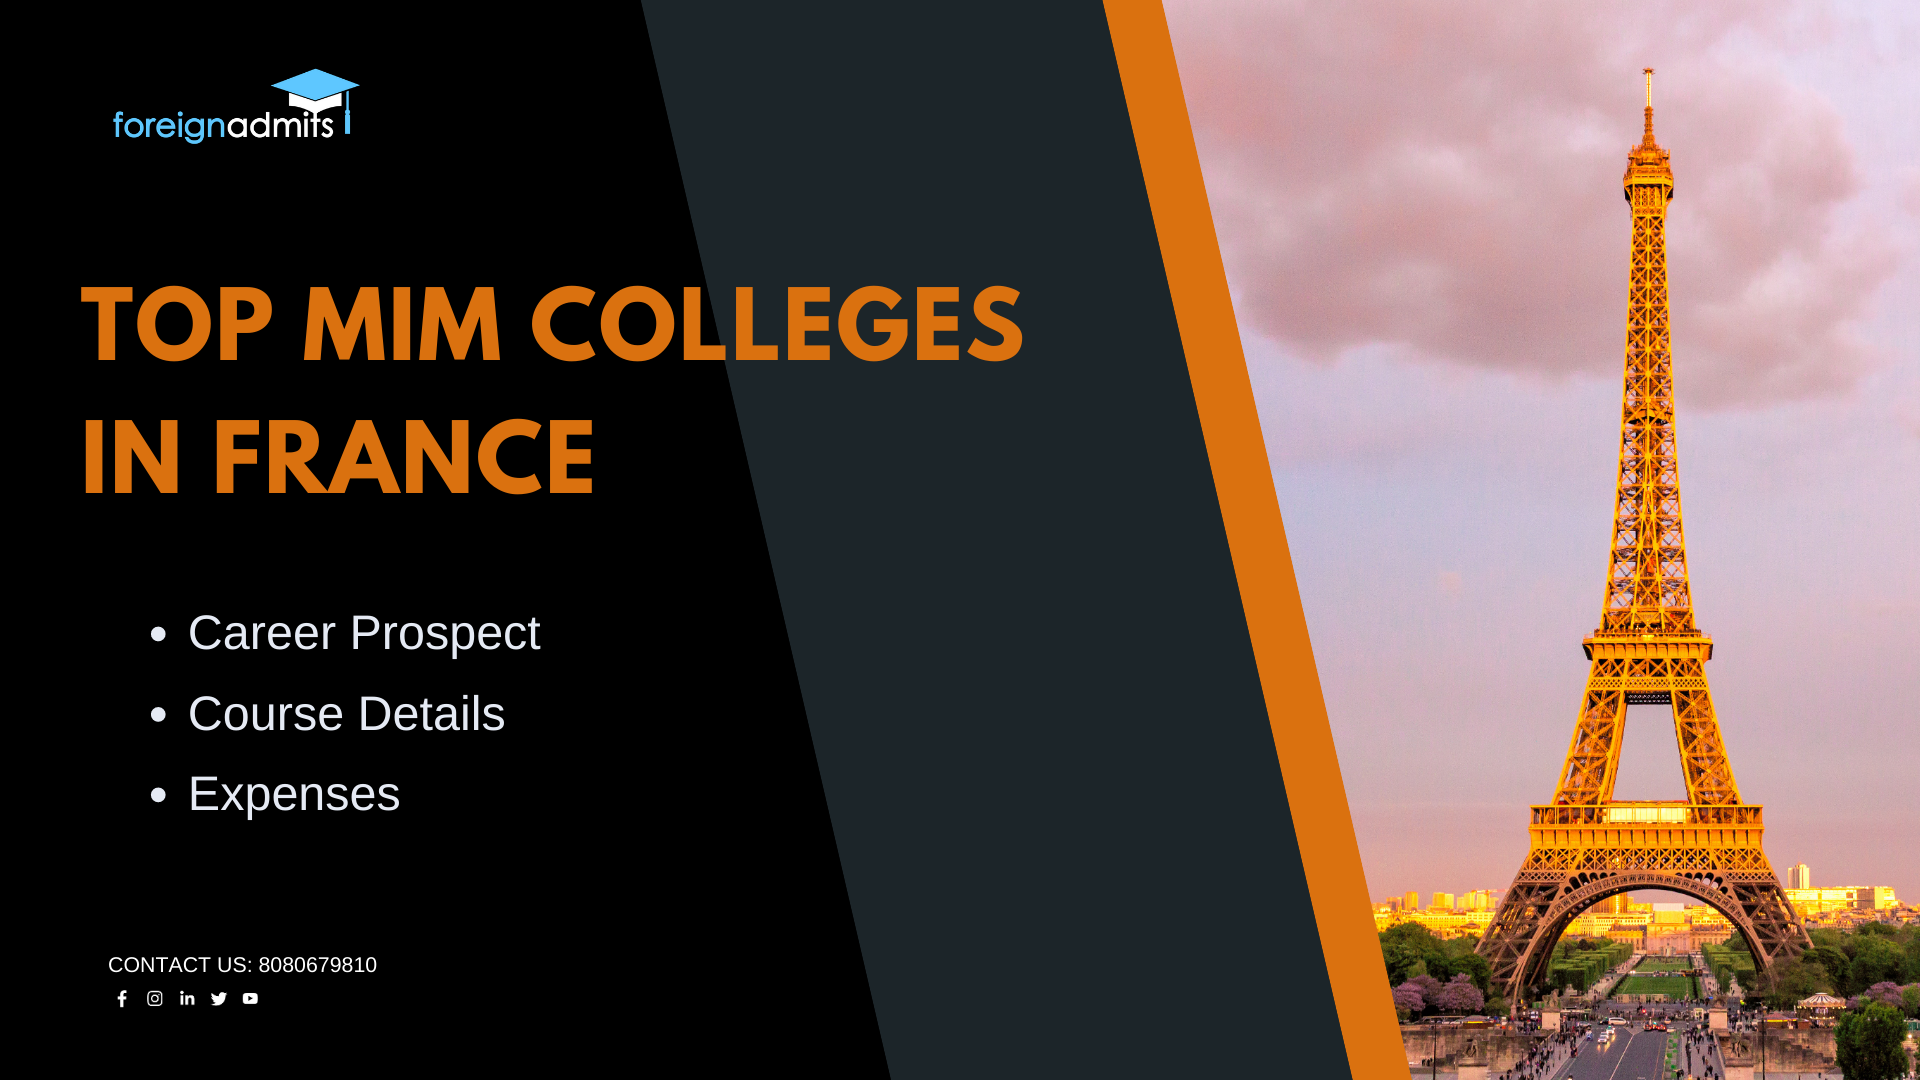 Top mim colleges in France